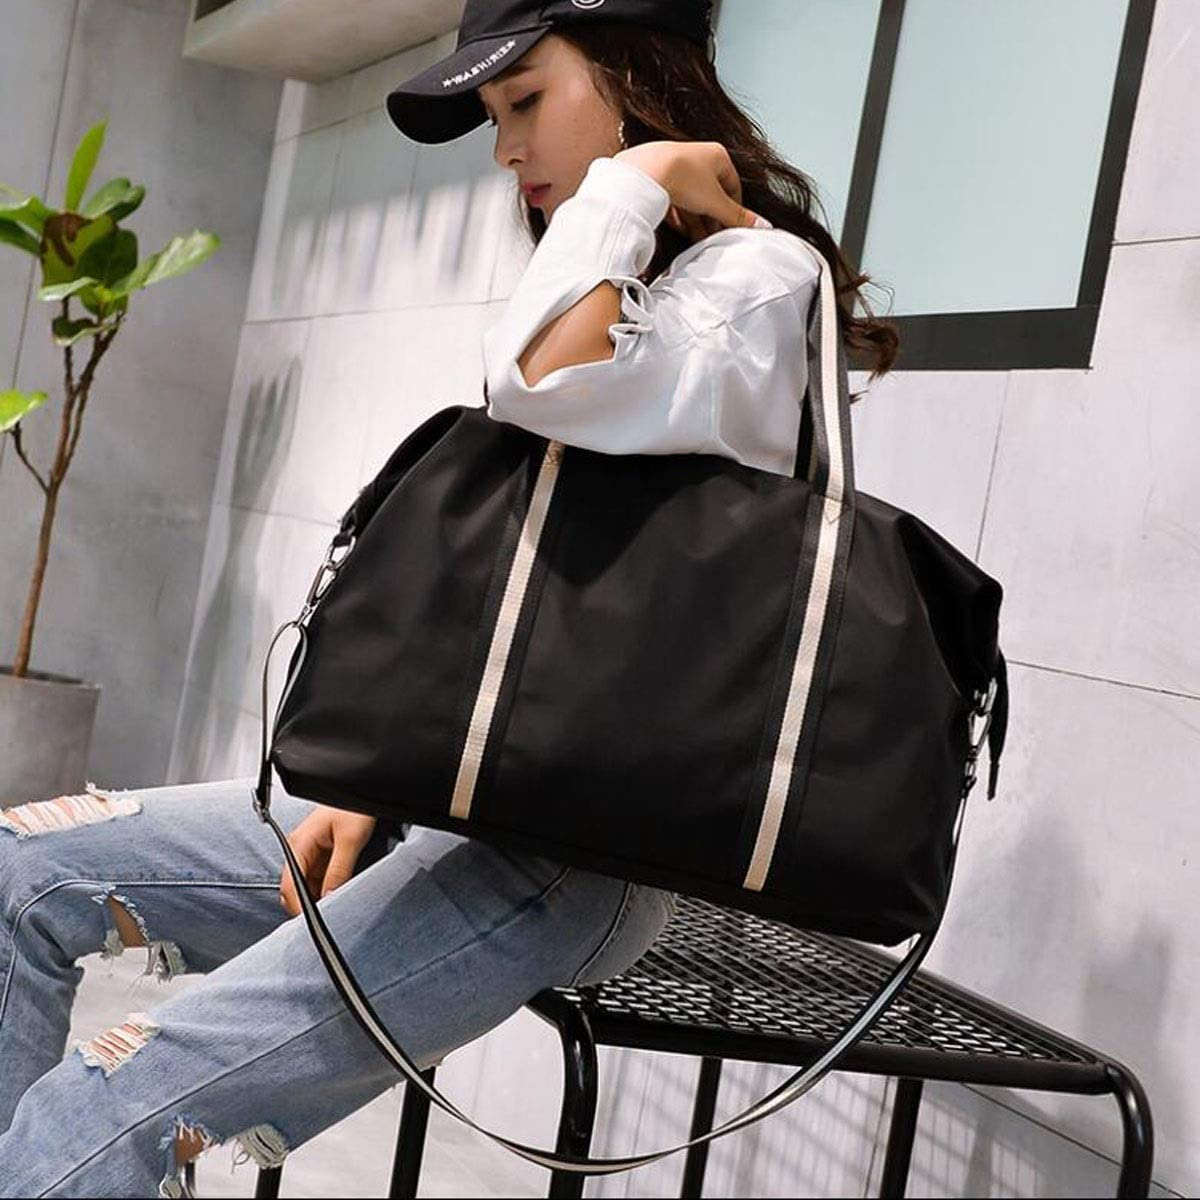 Kaiyitong Sports Bag Male and Female Suitcase Black Size: 601638cm Color : Black Large-Capacity Fitness Bag Short-Distance Travel Bag